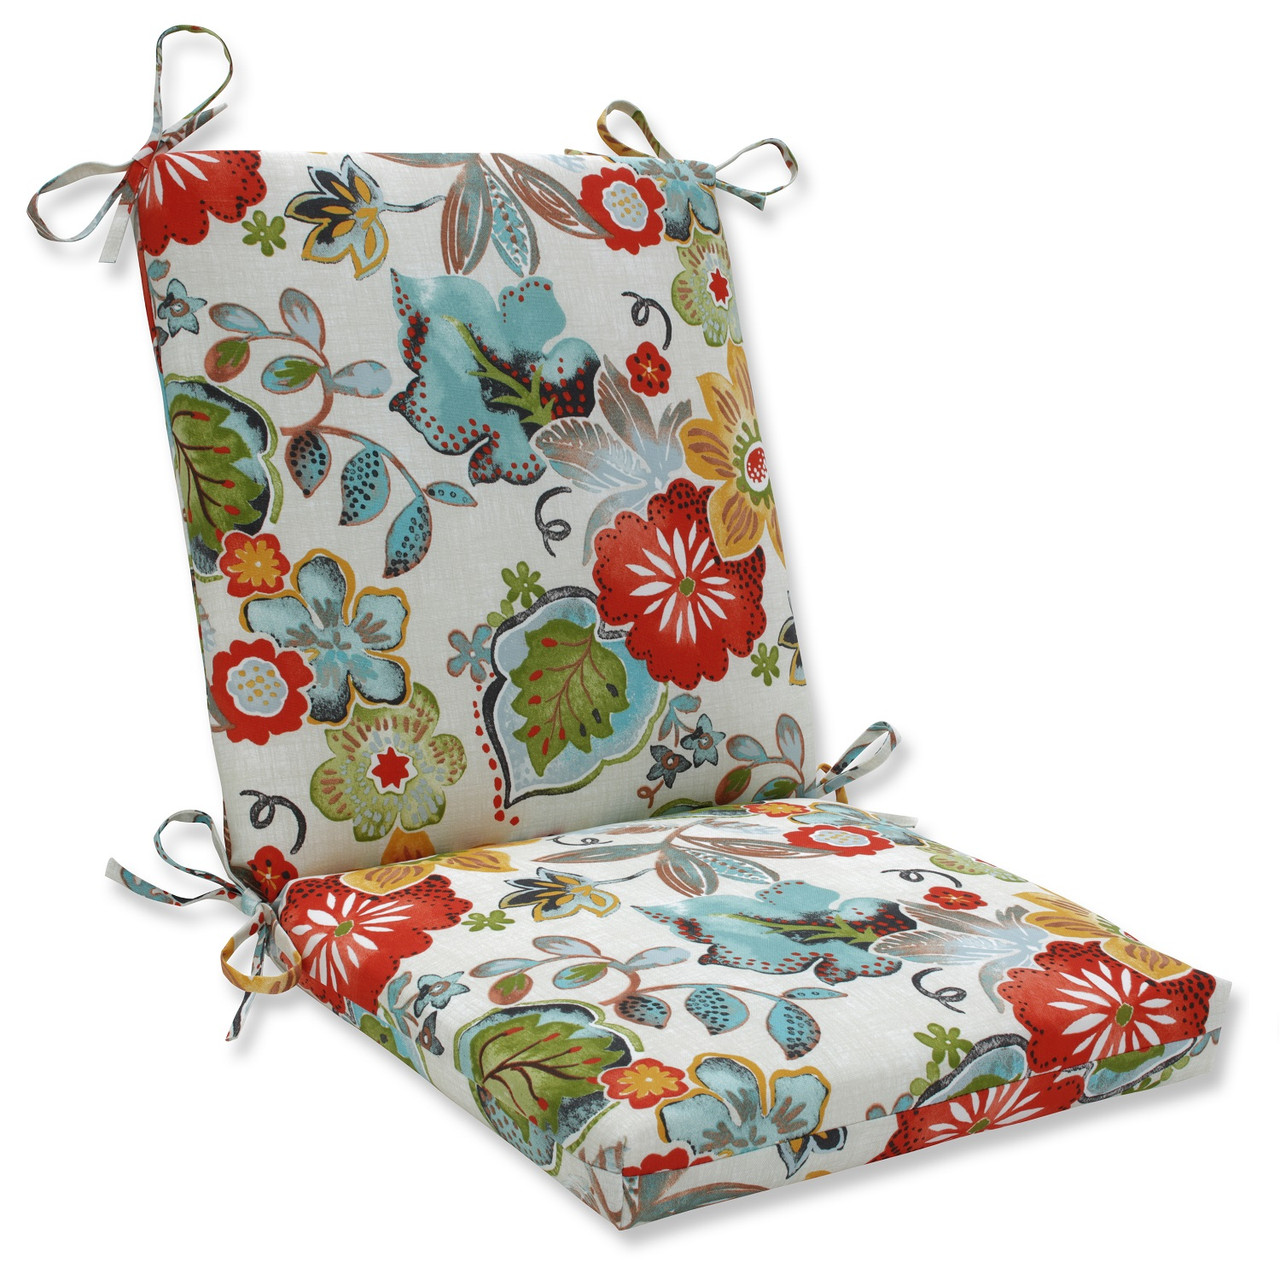 dining chair cushions target sling back chairs 36 5 rustic floral print outdoor patio cushion with